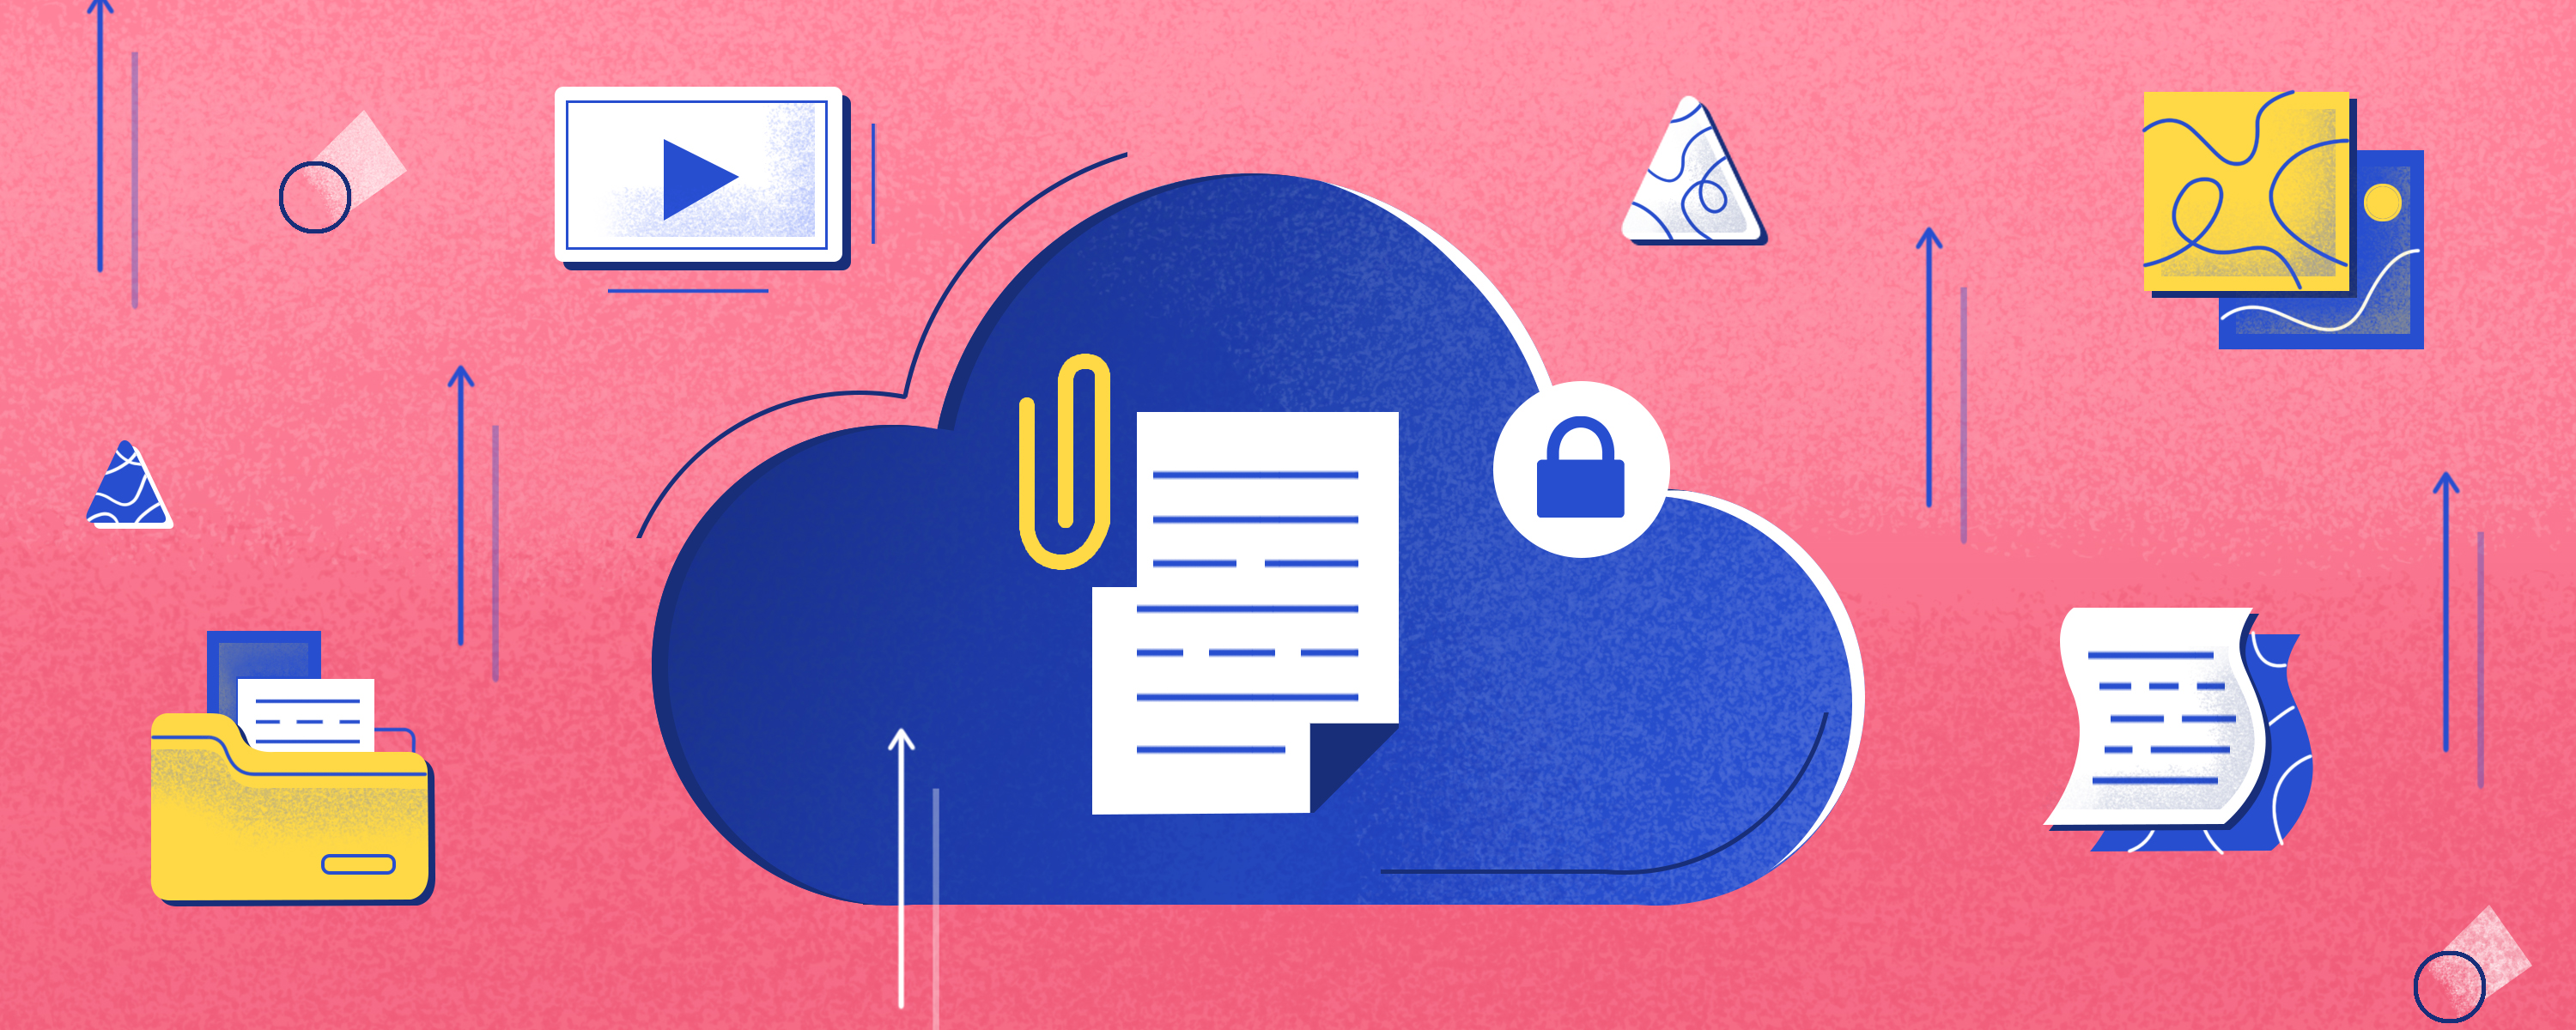 Serving private content from S3 using CloudFront